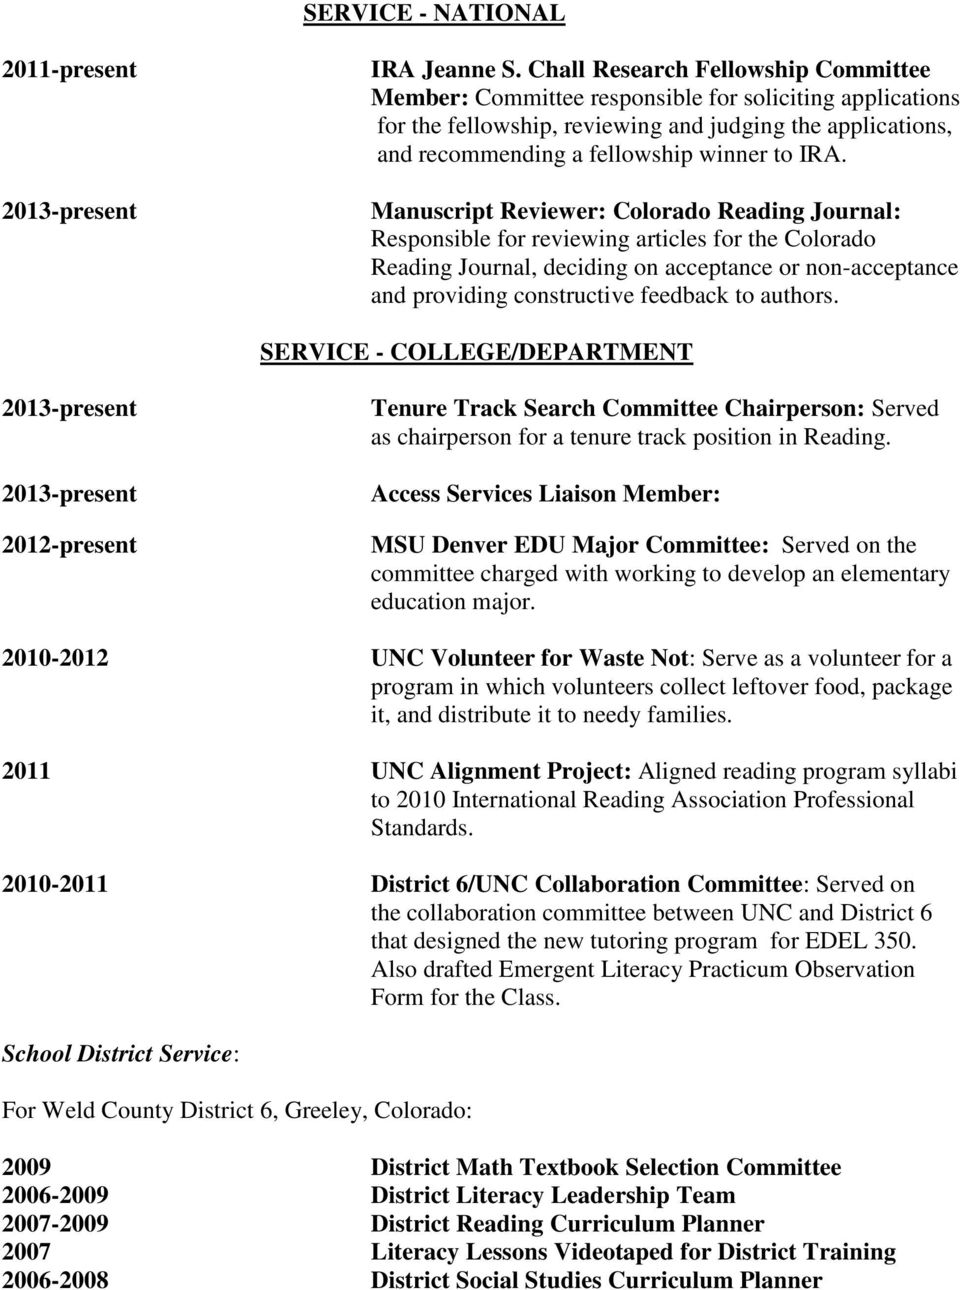 Manuscript Reviewer: Colorado Reading Journal: Responsible for reviewing articles for the Colorado Reading Journal, deciding on acceptance or non-acceptance and providing constructive feedback to